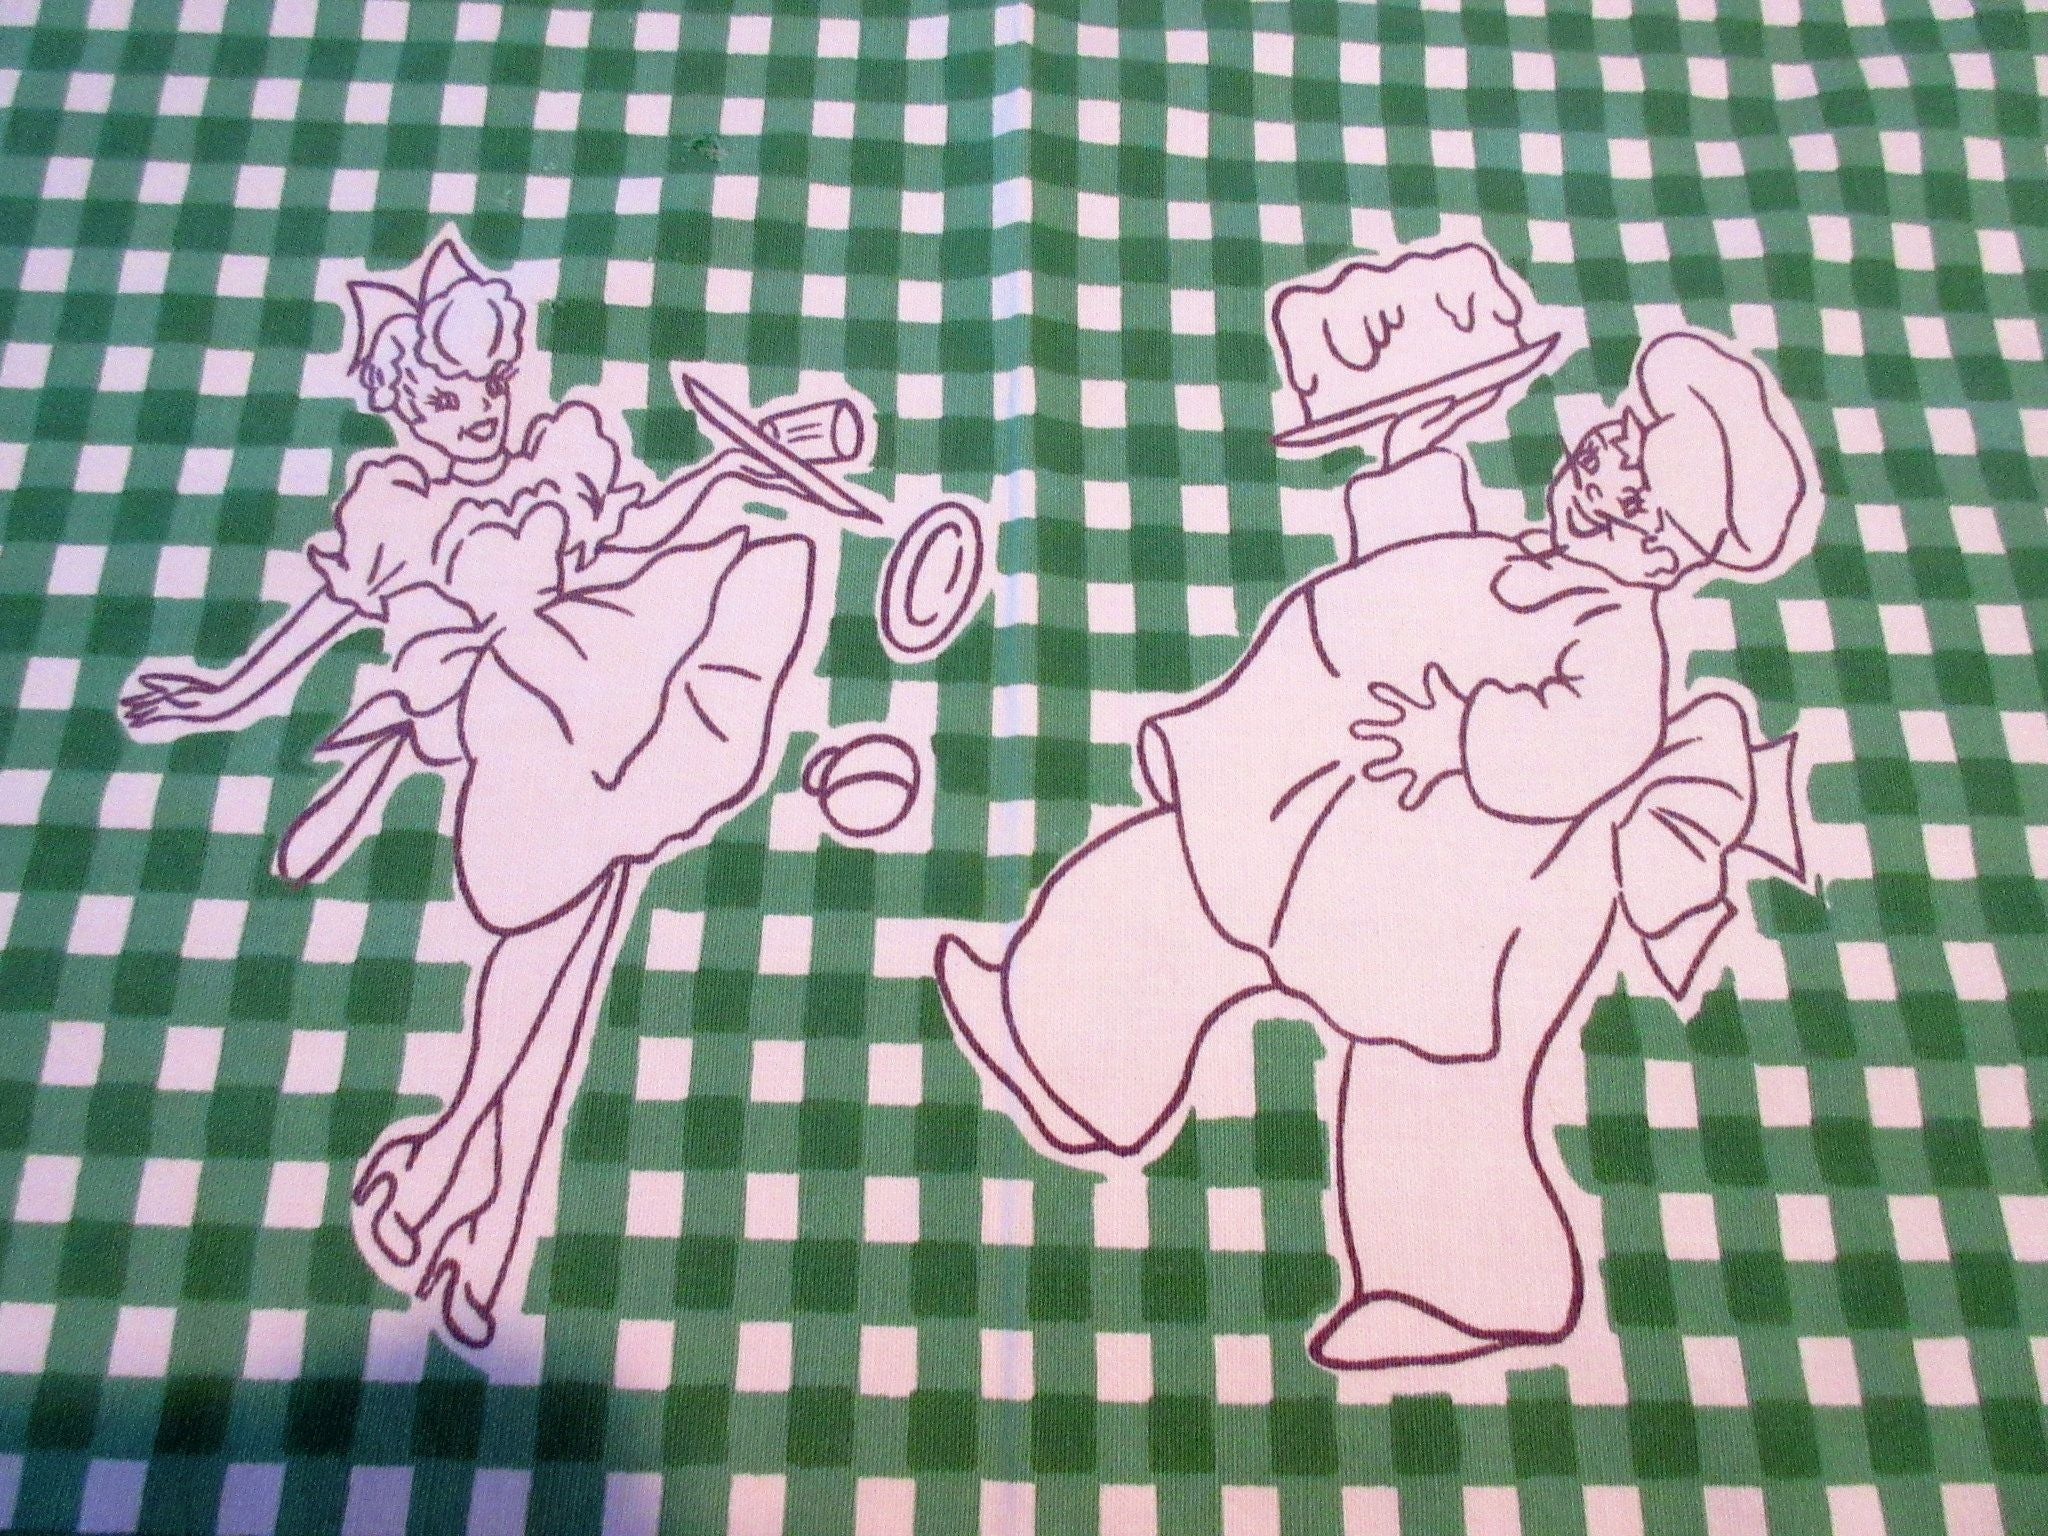 Startex Cartoon Chef Waitress Green Gingham Novelty Vintage Printed Tablecloth (53 X 46)